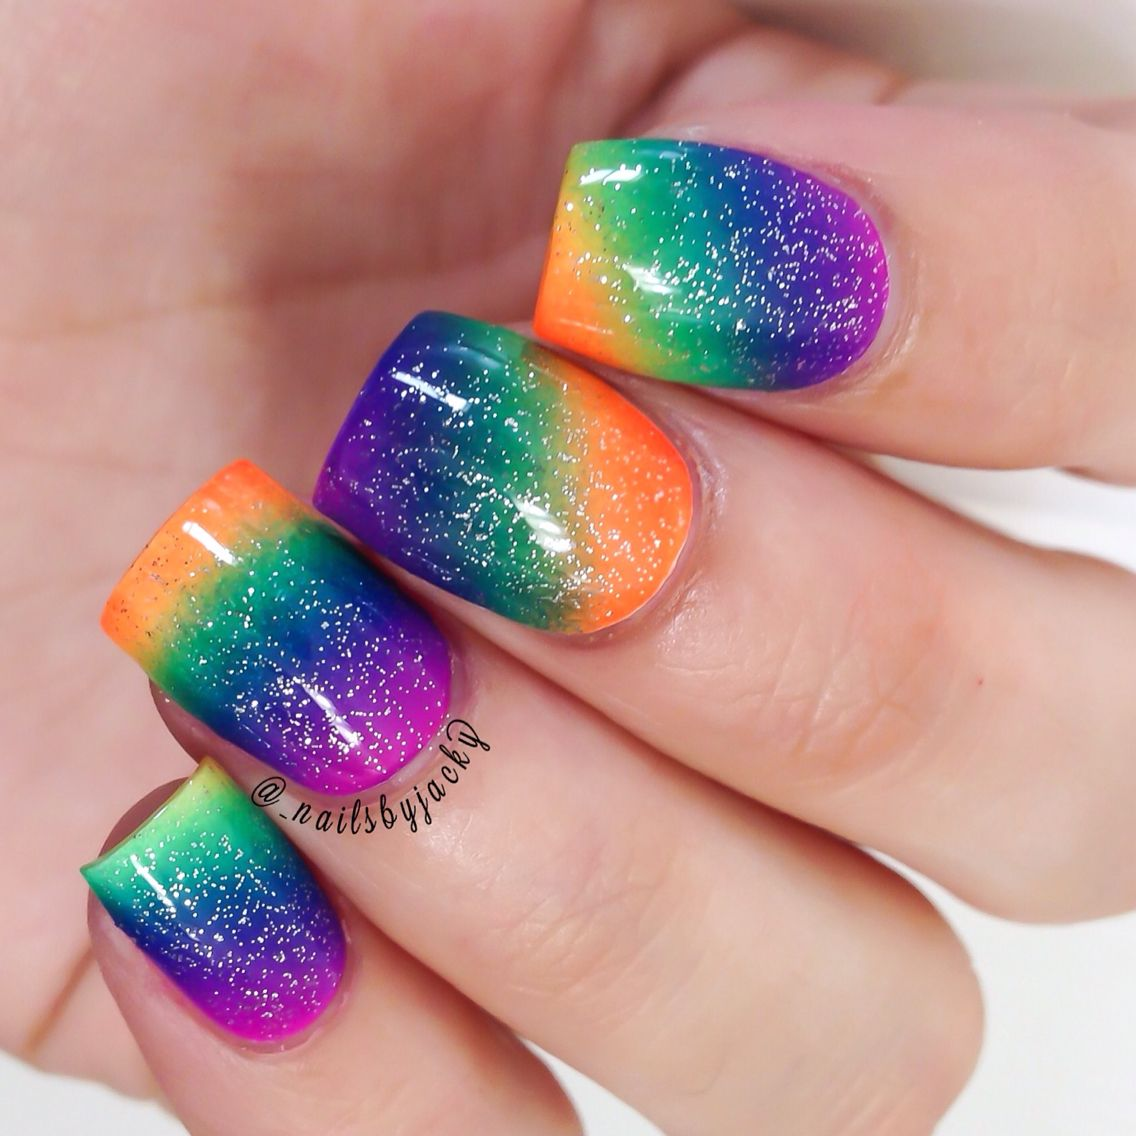 Tried to do a rainbow gradient | My Nail Art ❤ | Pinterest ...